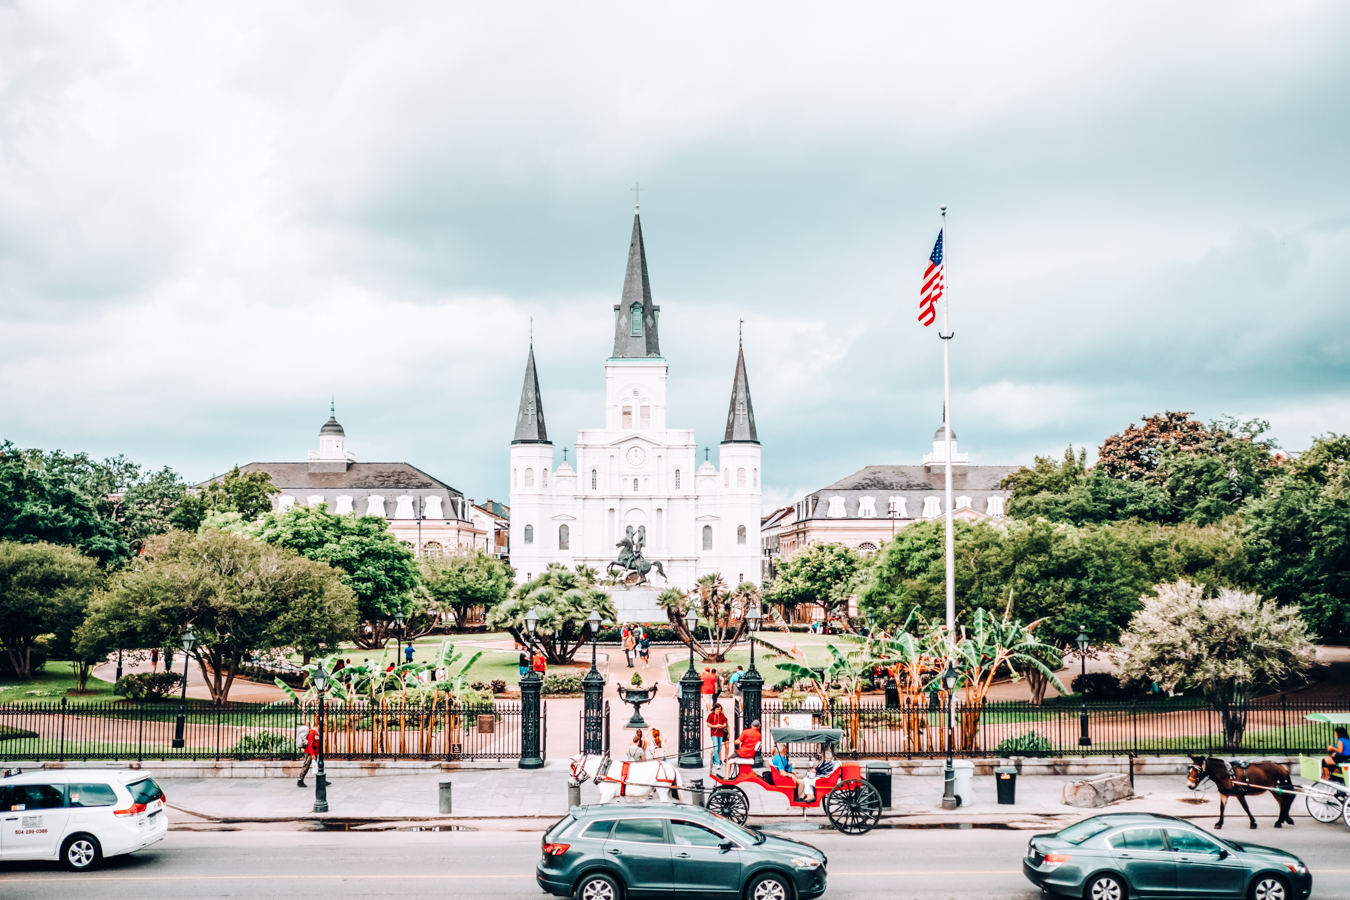 Building and trees in New Orleans